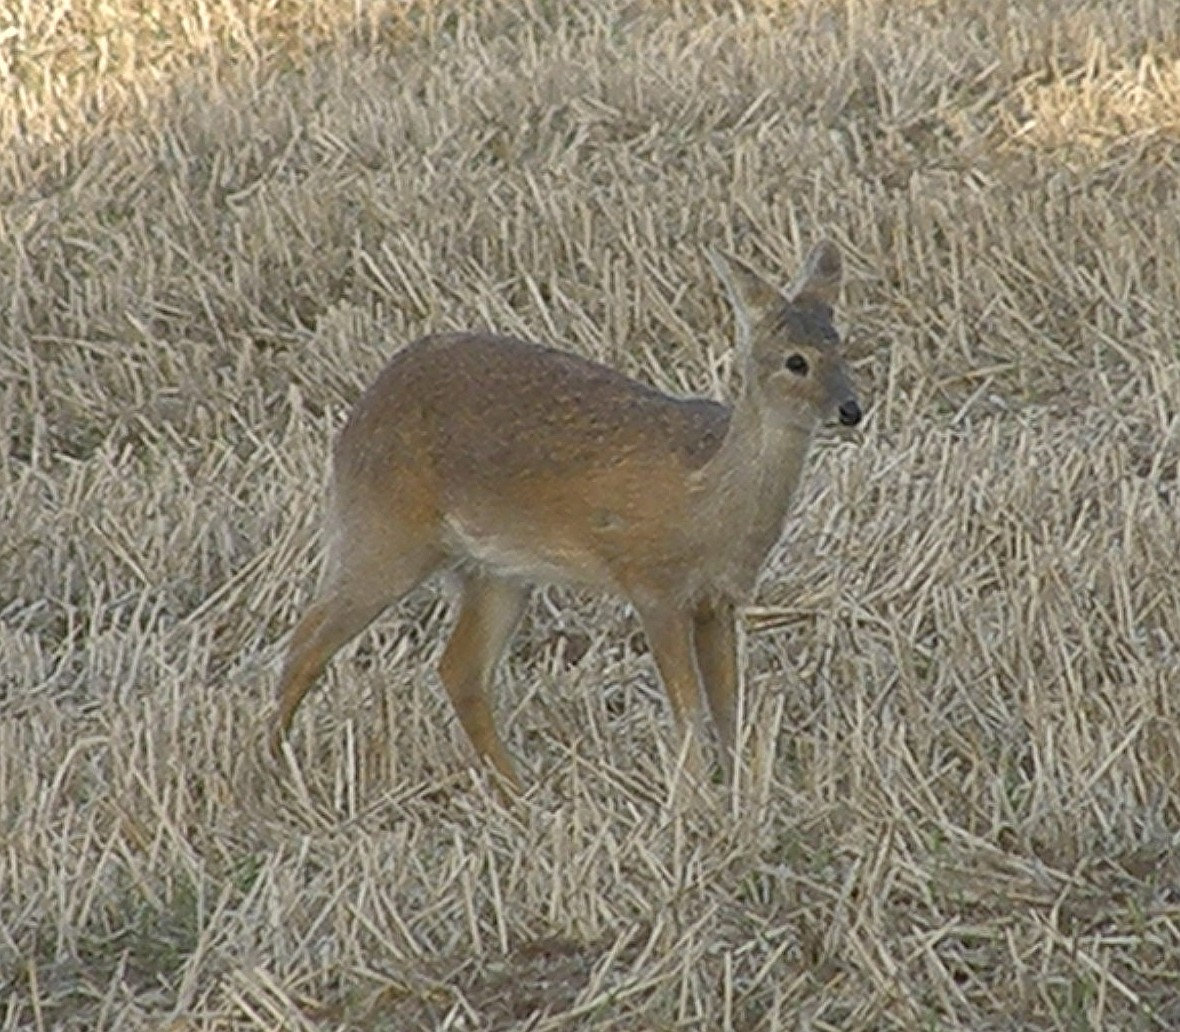 Chinese Water Deer in Bedfordshire